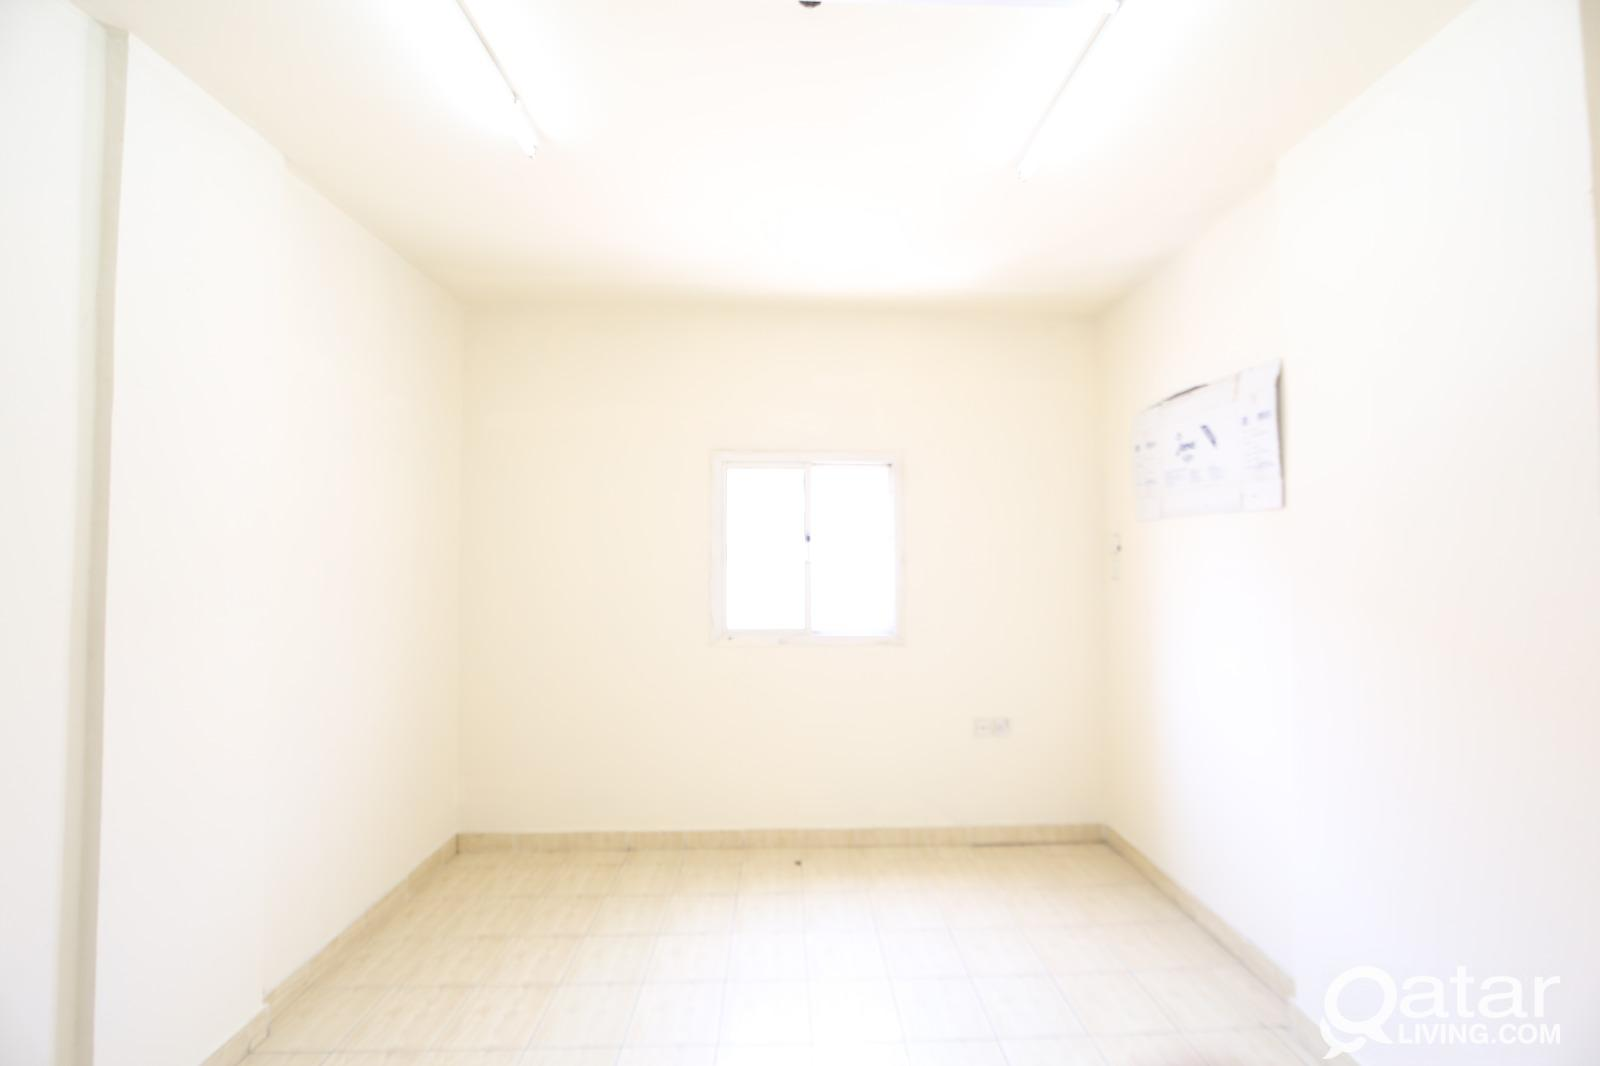 ONE ROOM BACHLORE  AVAILABLE IN OLD SALTHA. NO COM